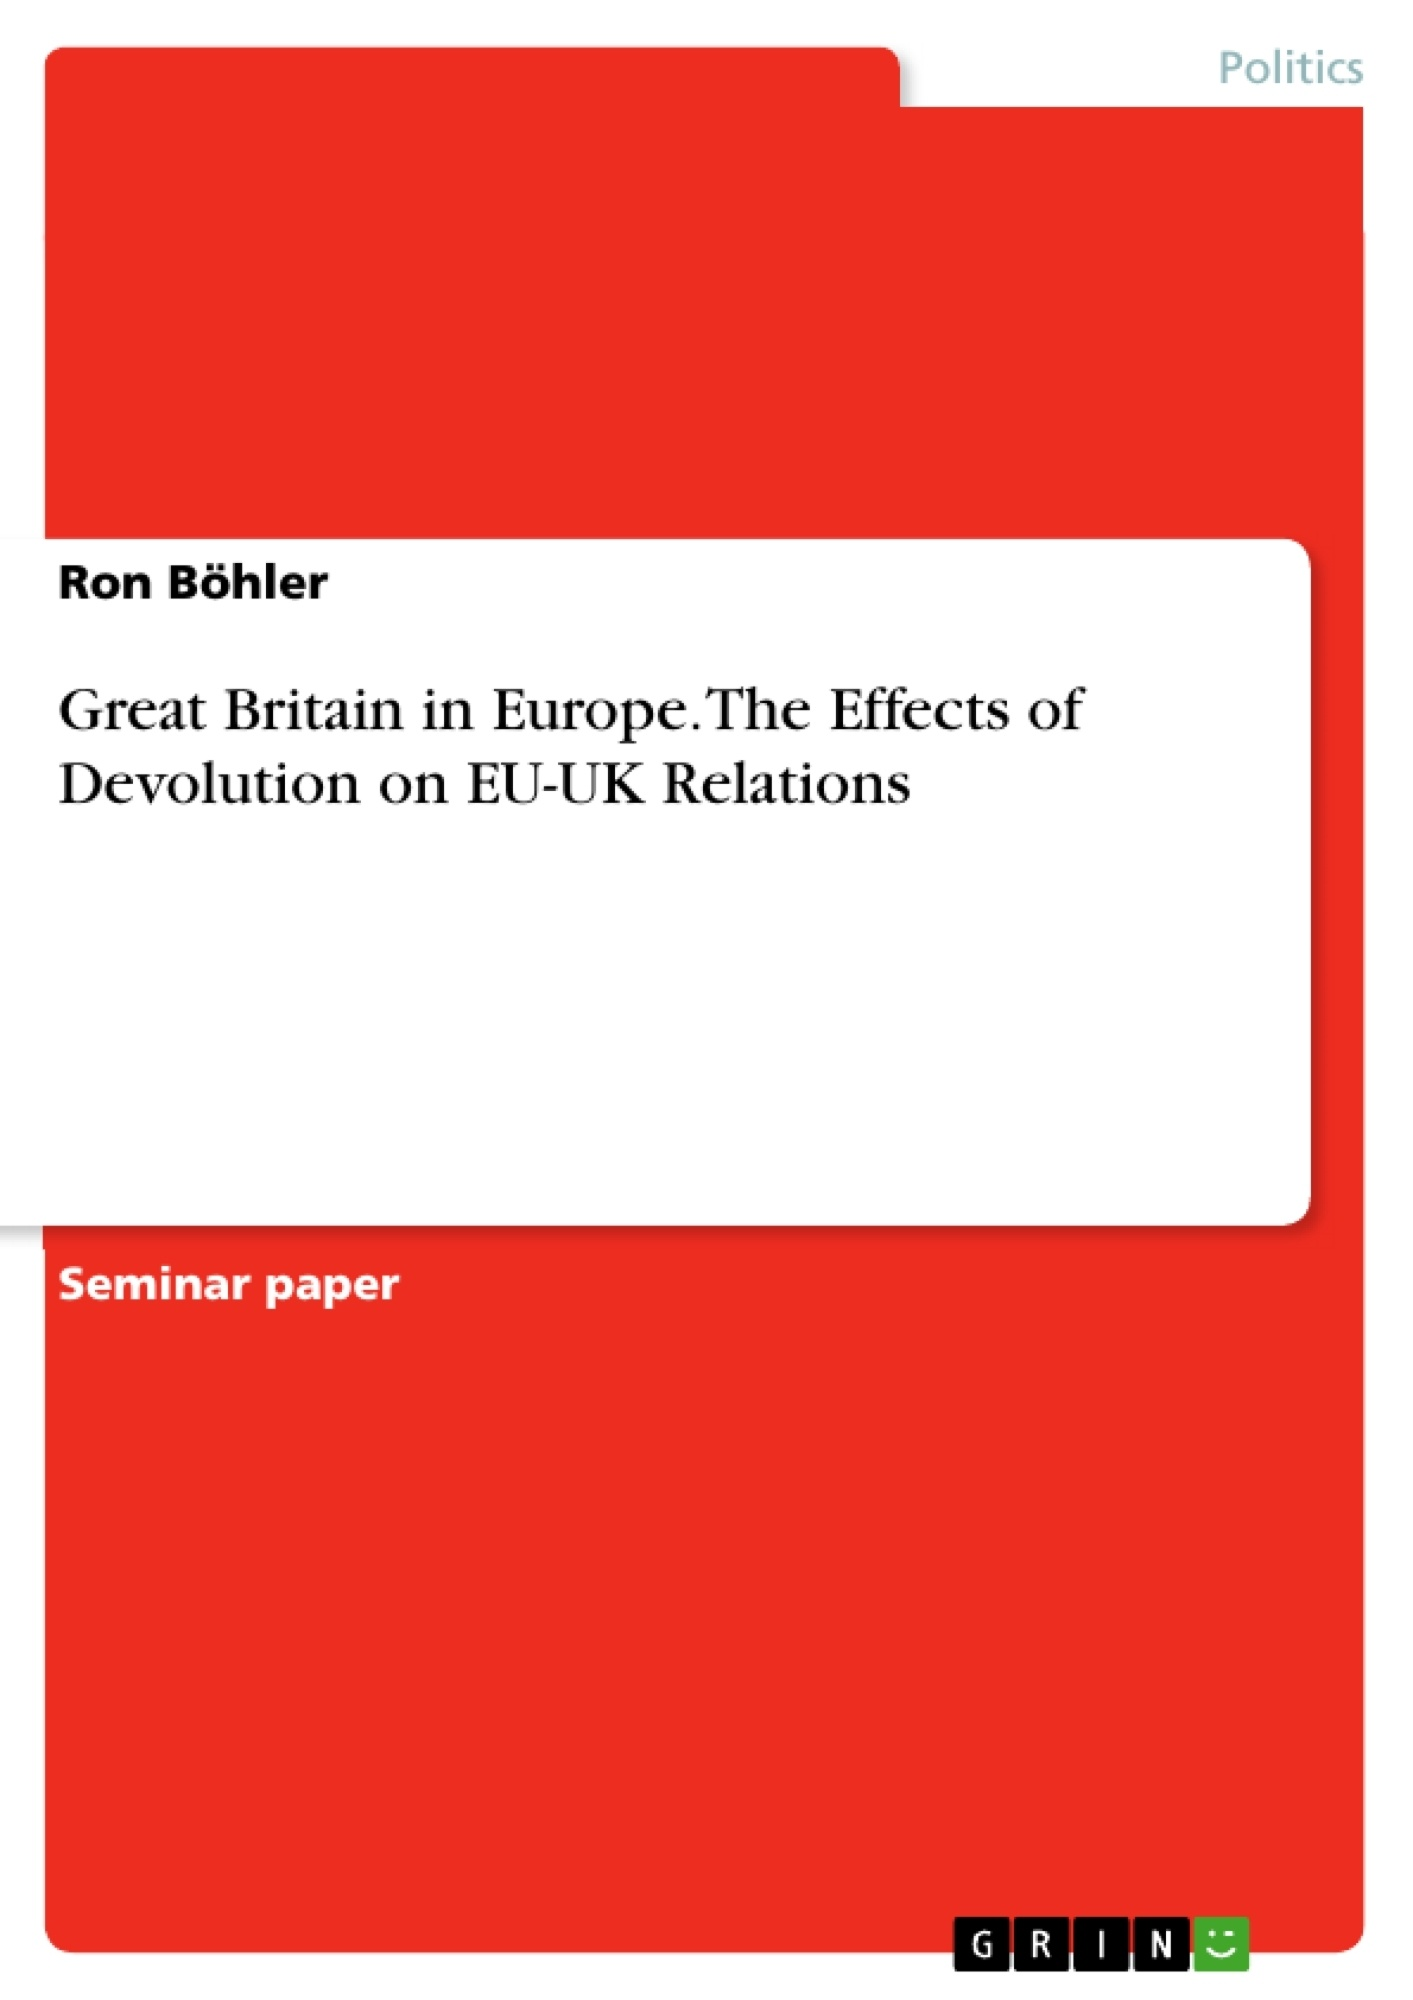 great britain in europe the effects of devolution on eu uk